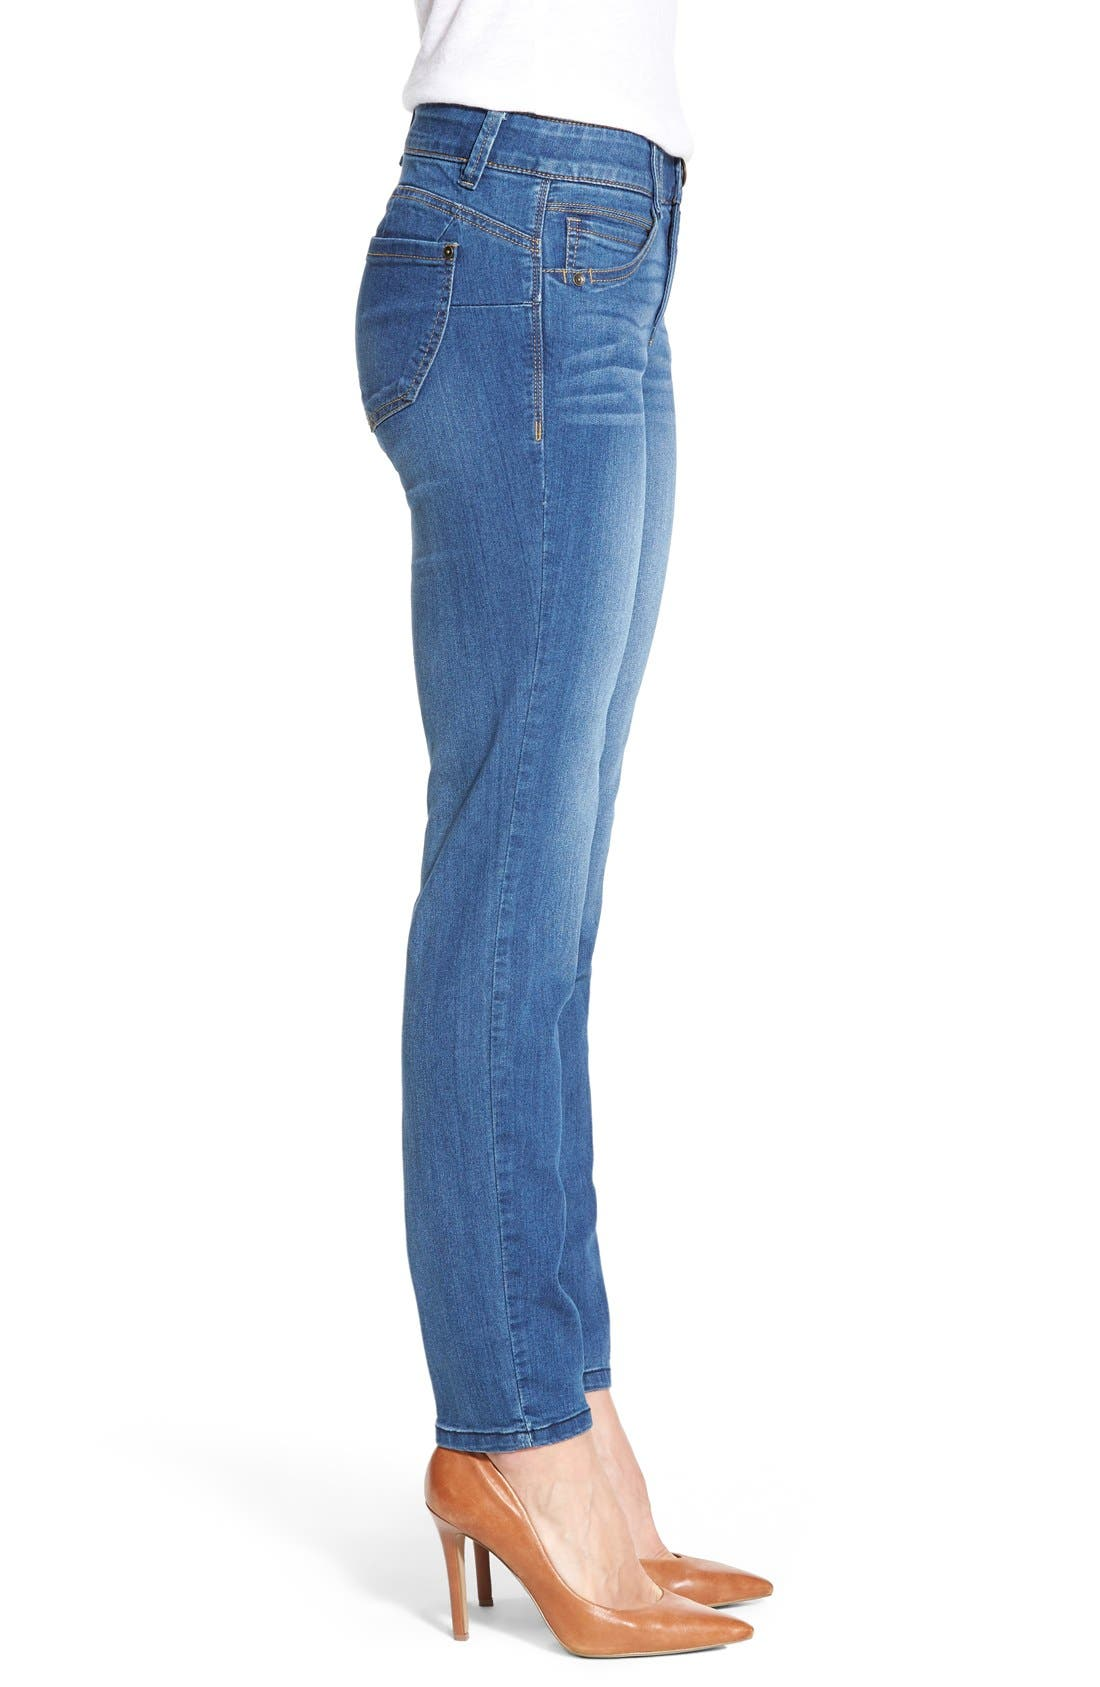 Alternate Image 3  - Wit & Wisdom 'Ab-solution' Booty Lift Stretch Skinny Jeans (Nordstrom Exclusive)